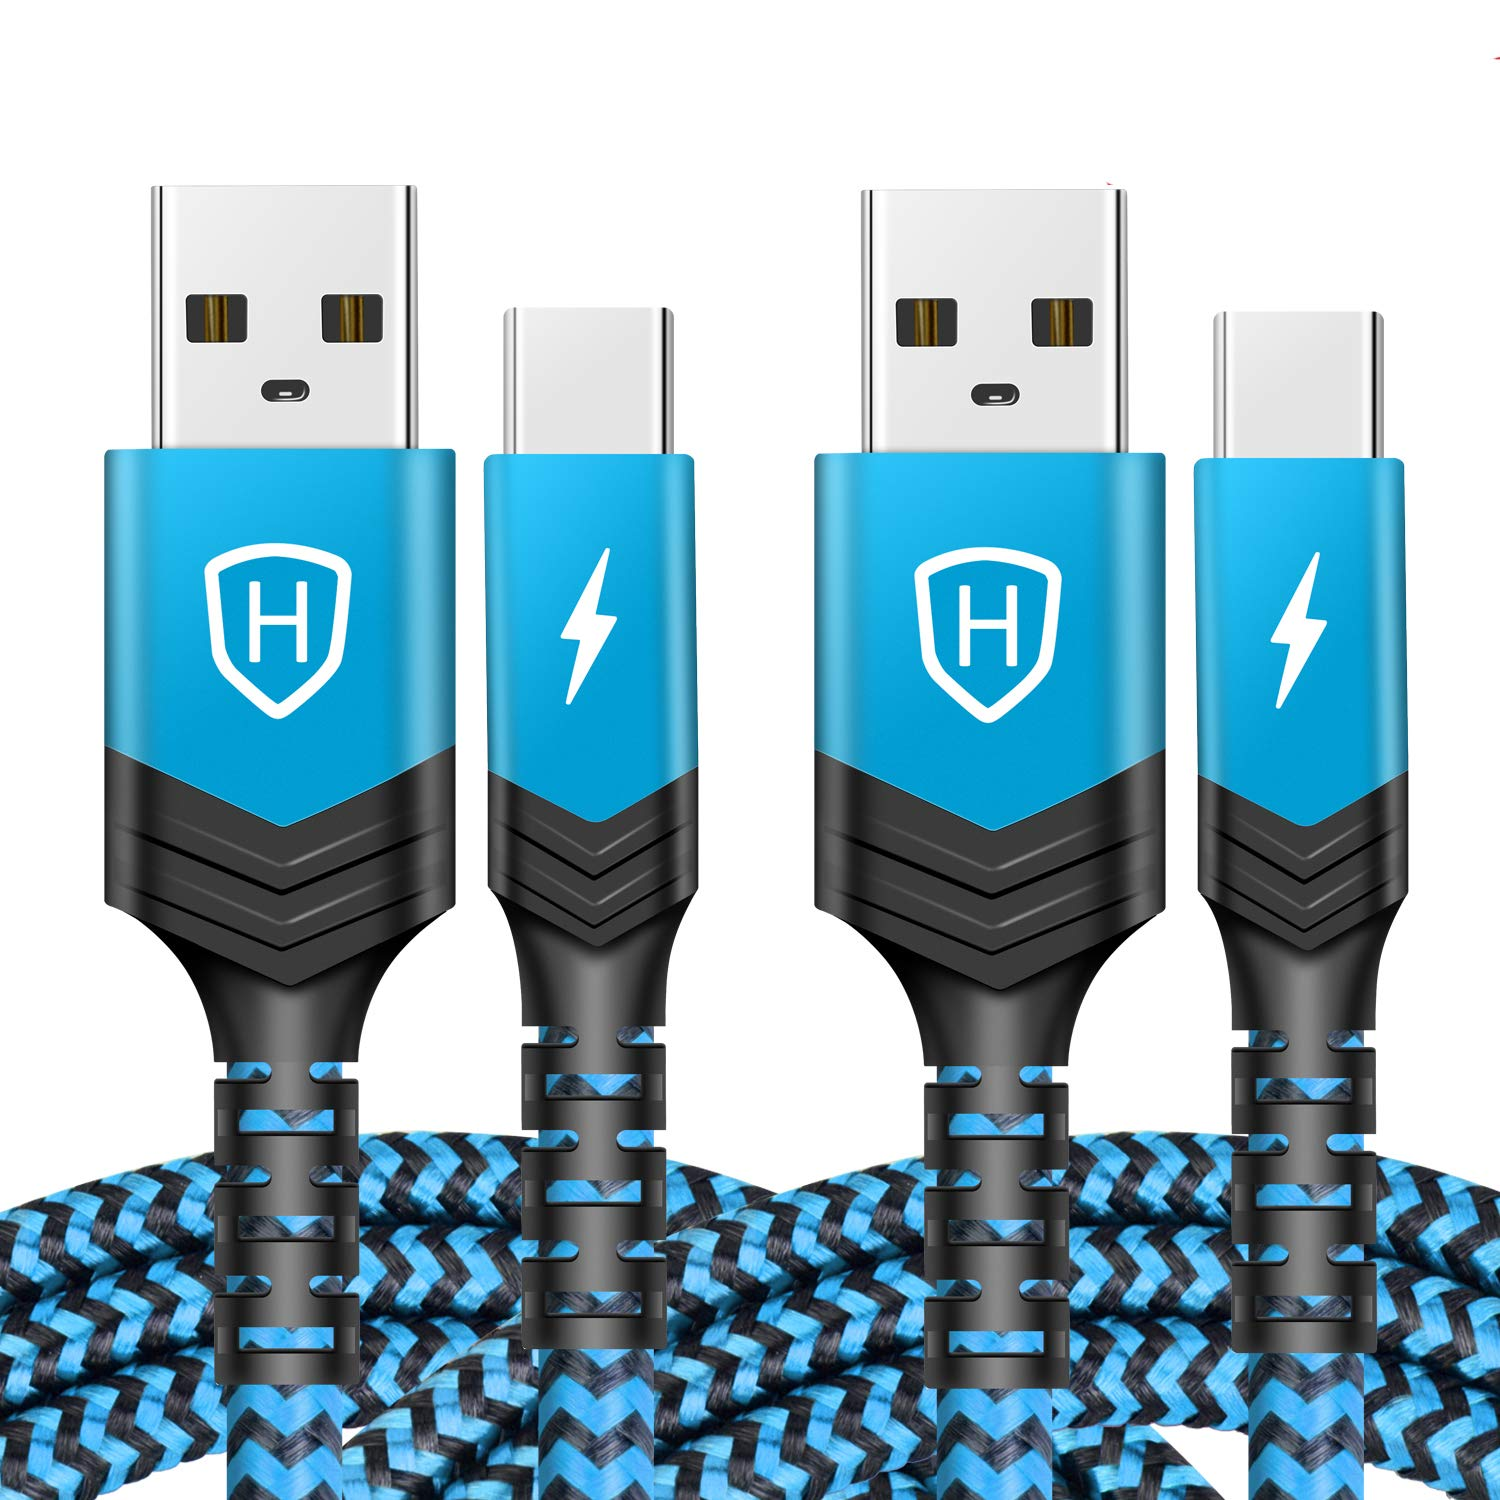 USB Type C Cable,[2-Pack][10ft]USB A toType C Cable Nylon Braided Fast Charger Sync Cord Compatible Samsung Galaxy S10 S9 S8 Plus Note 9 8,Moto Z,LG V30 V20 G5,Google Pixel XL,USB C Devices (Blue)